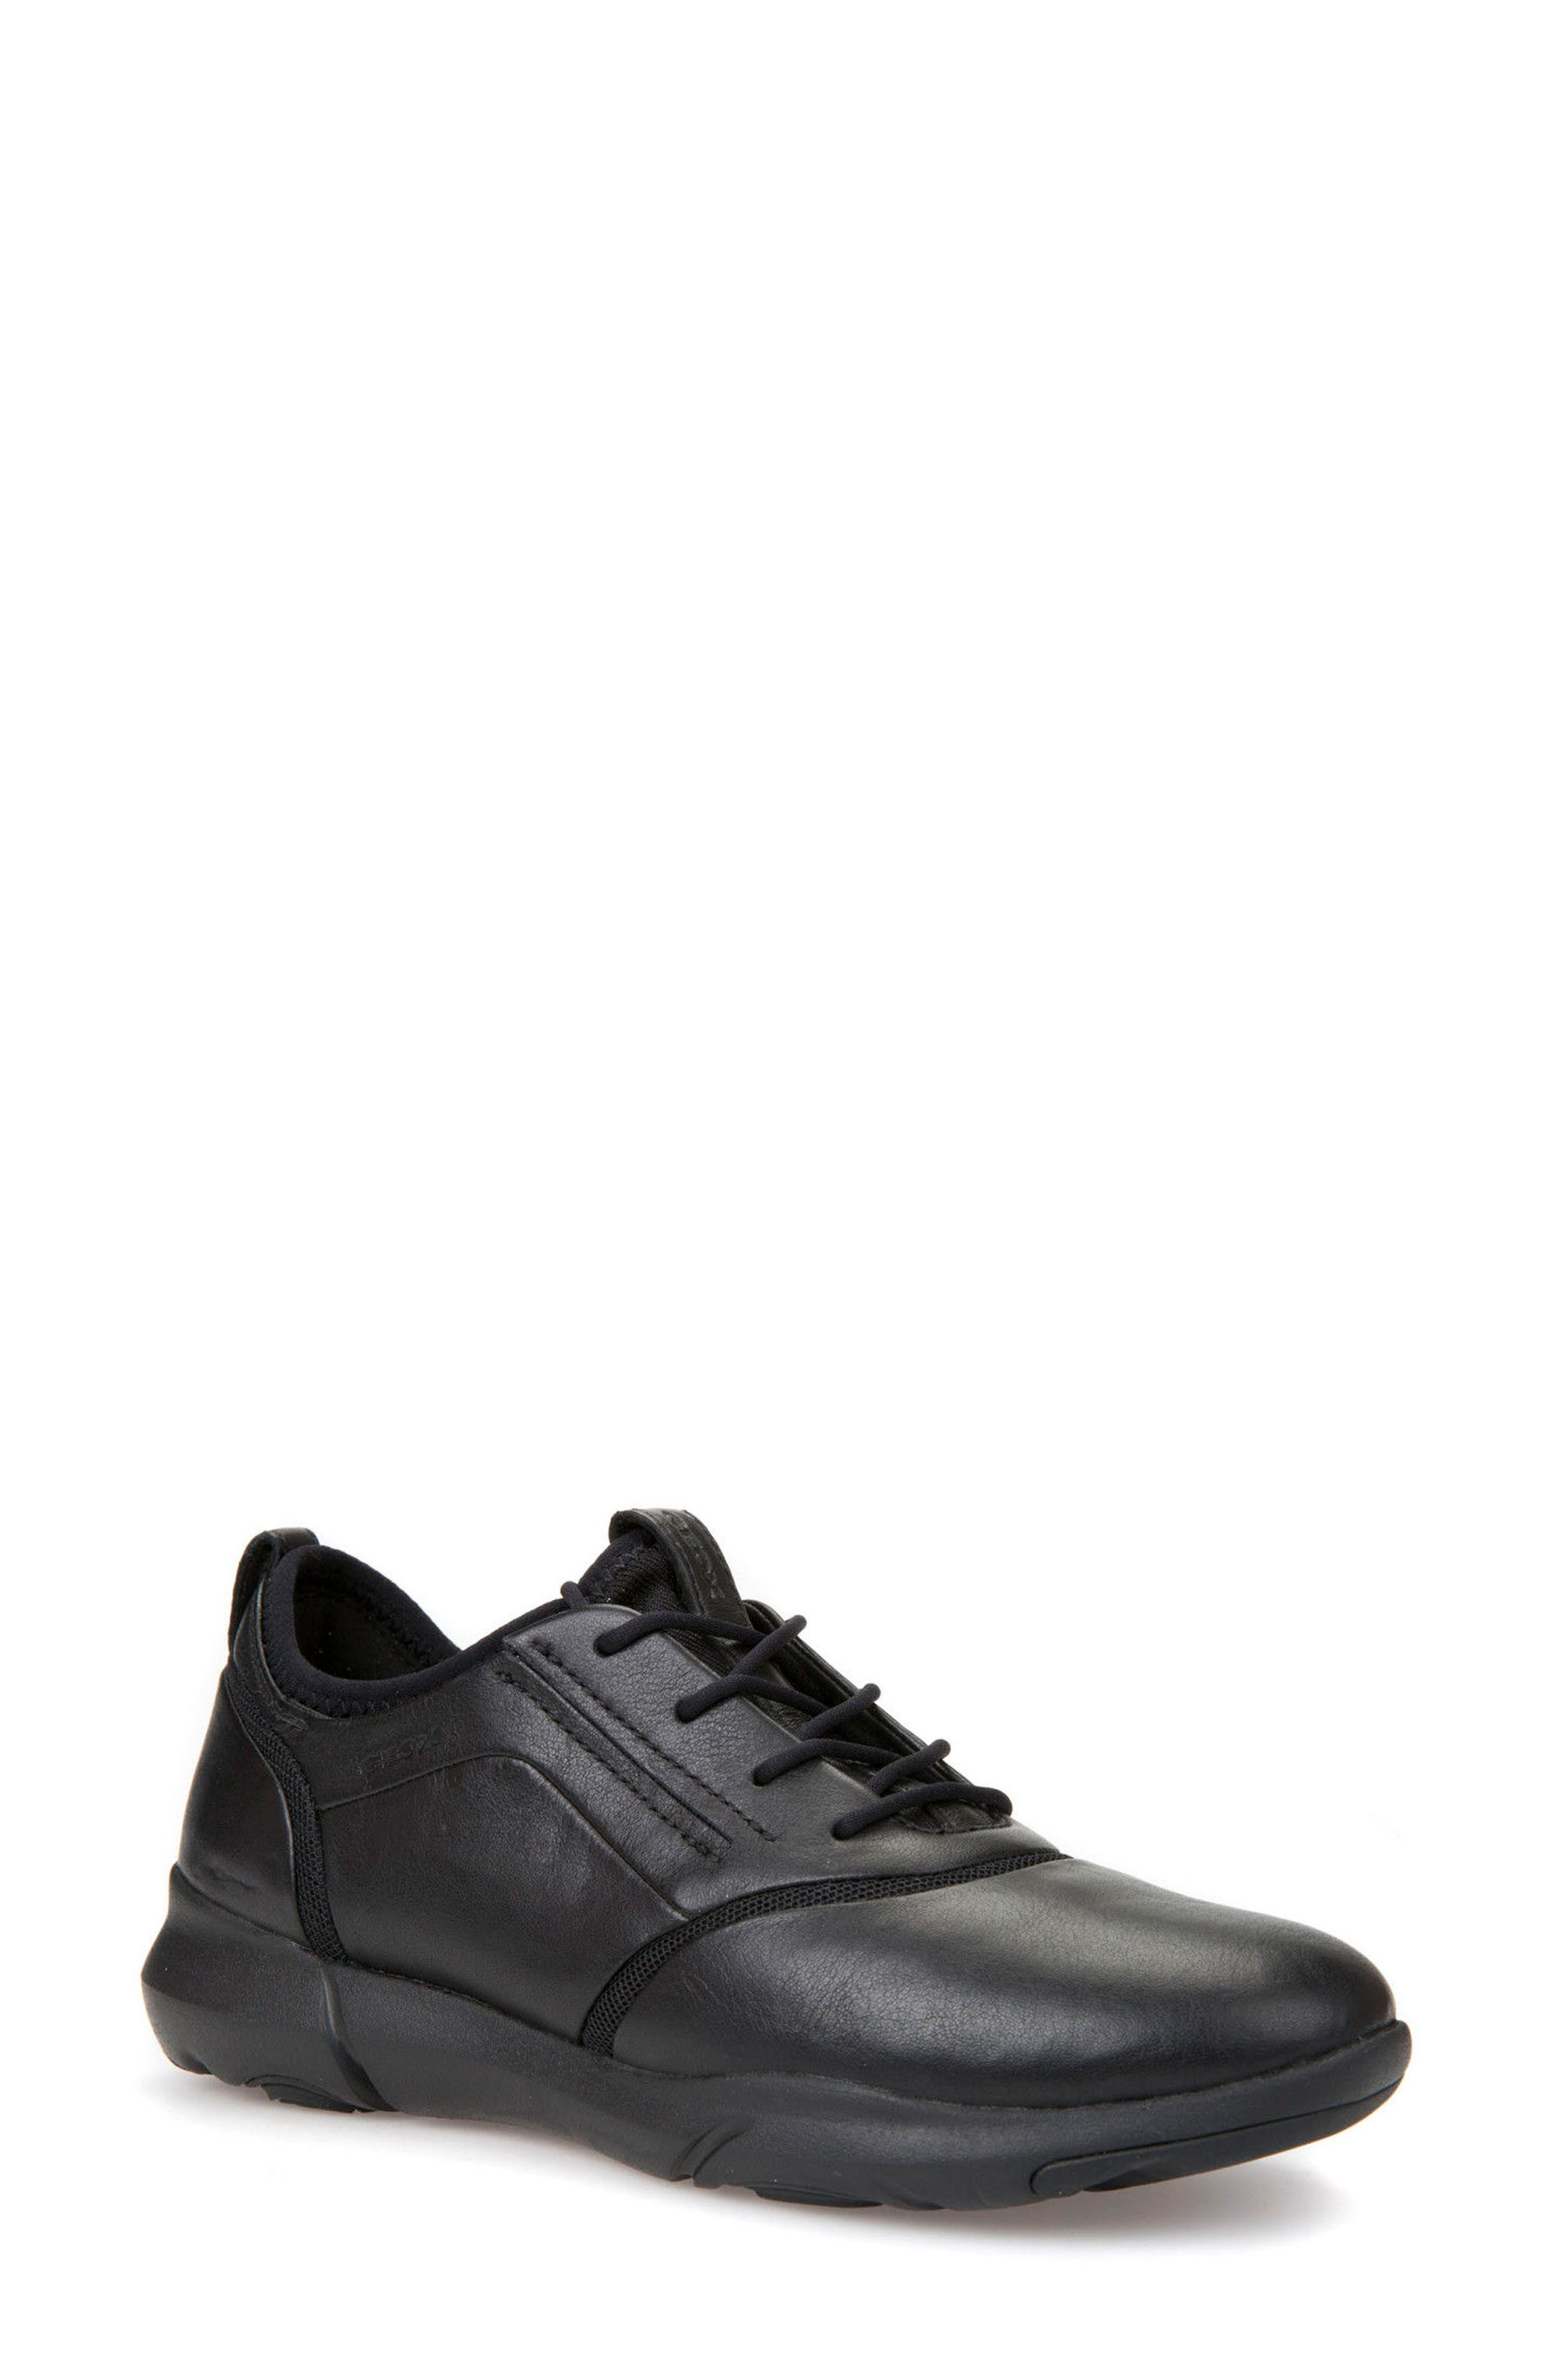 Nebula S 2 Low Top Sneaker,                         Main,                         color, Black Leather